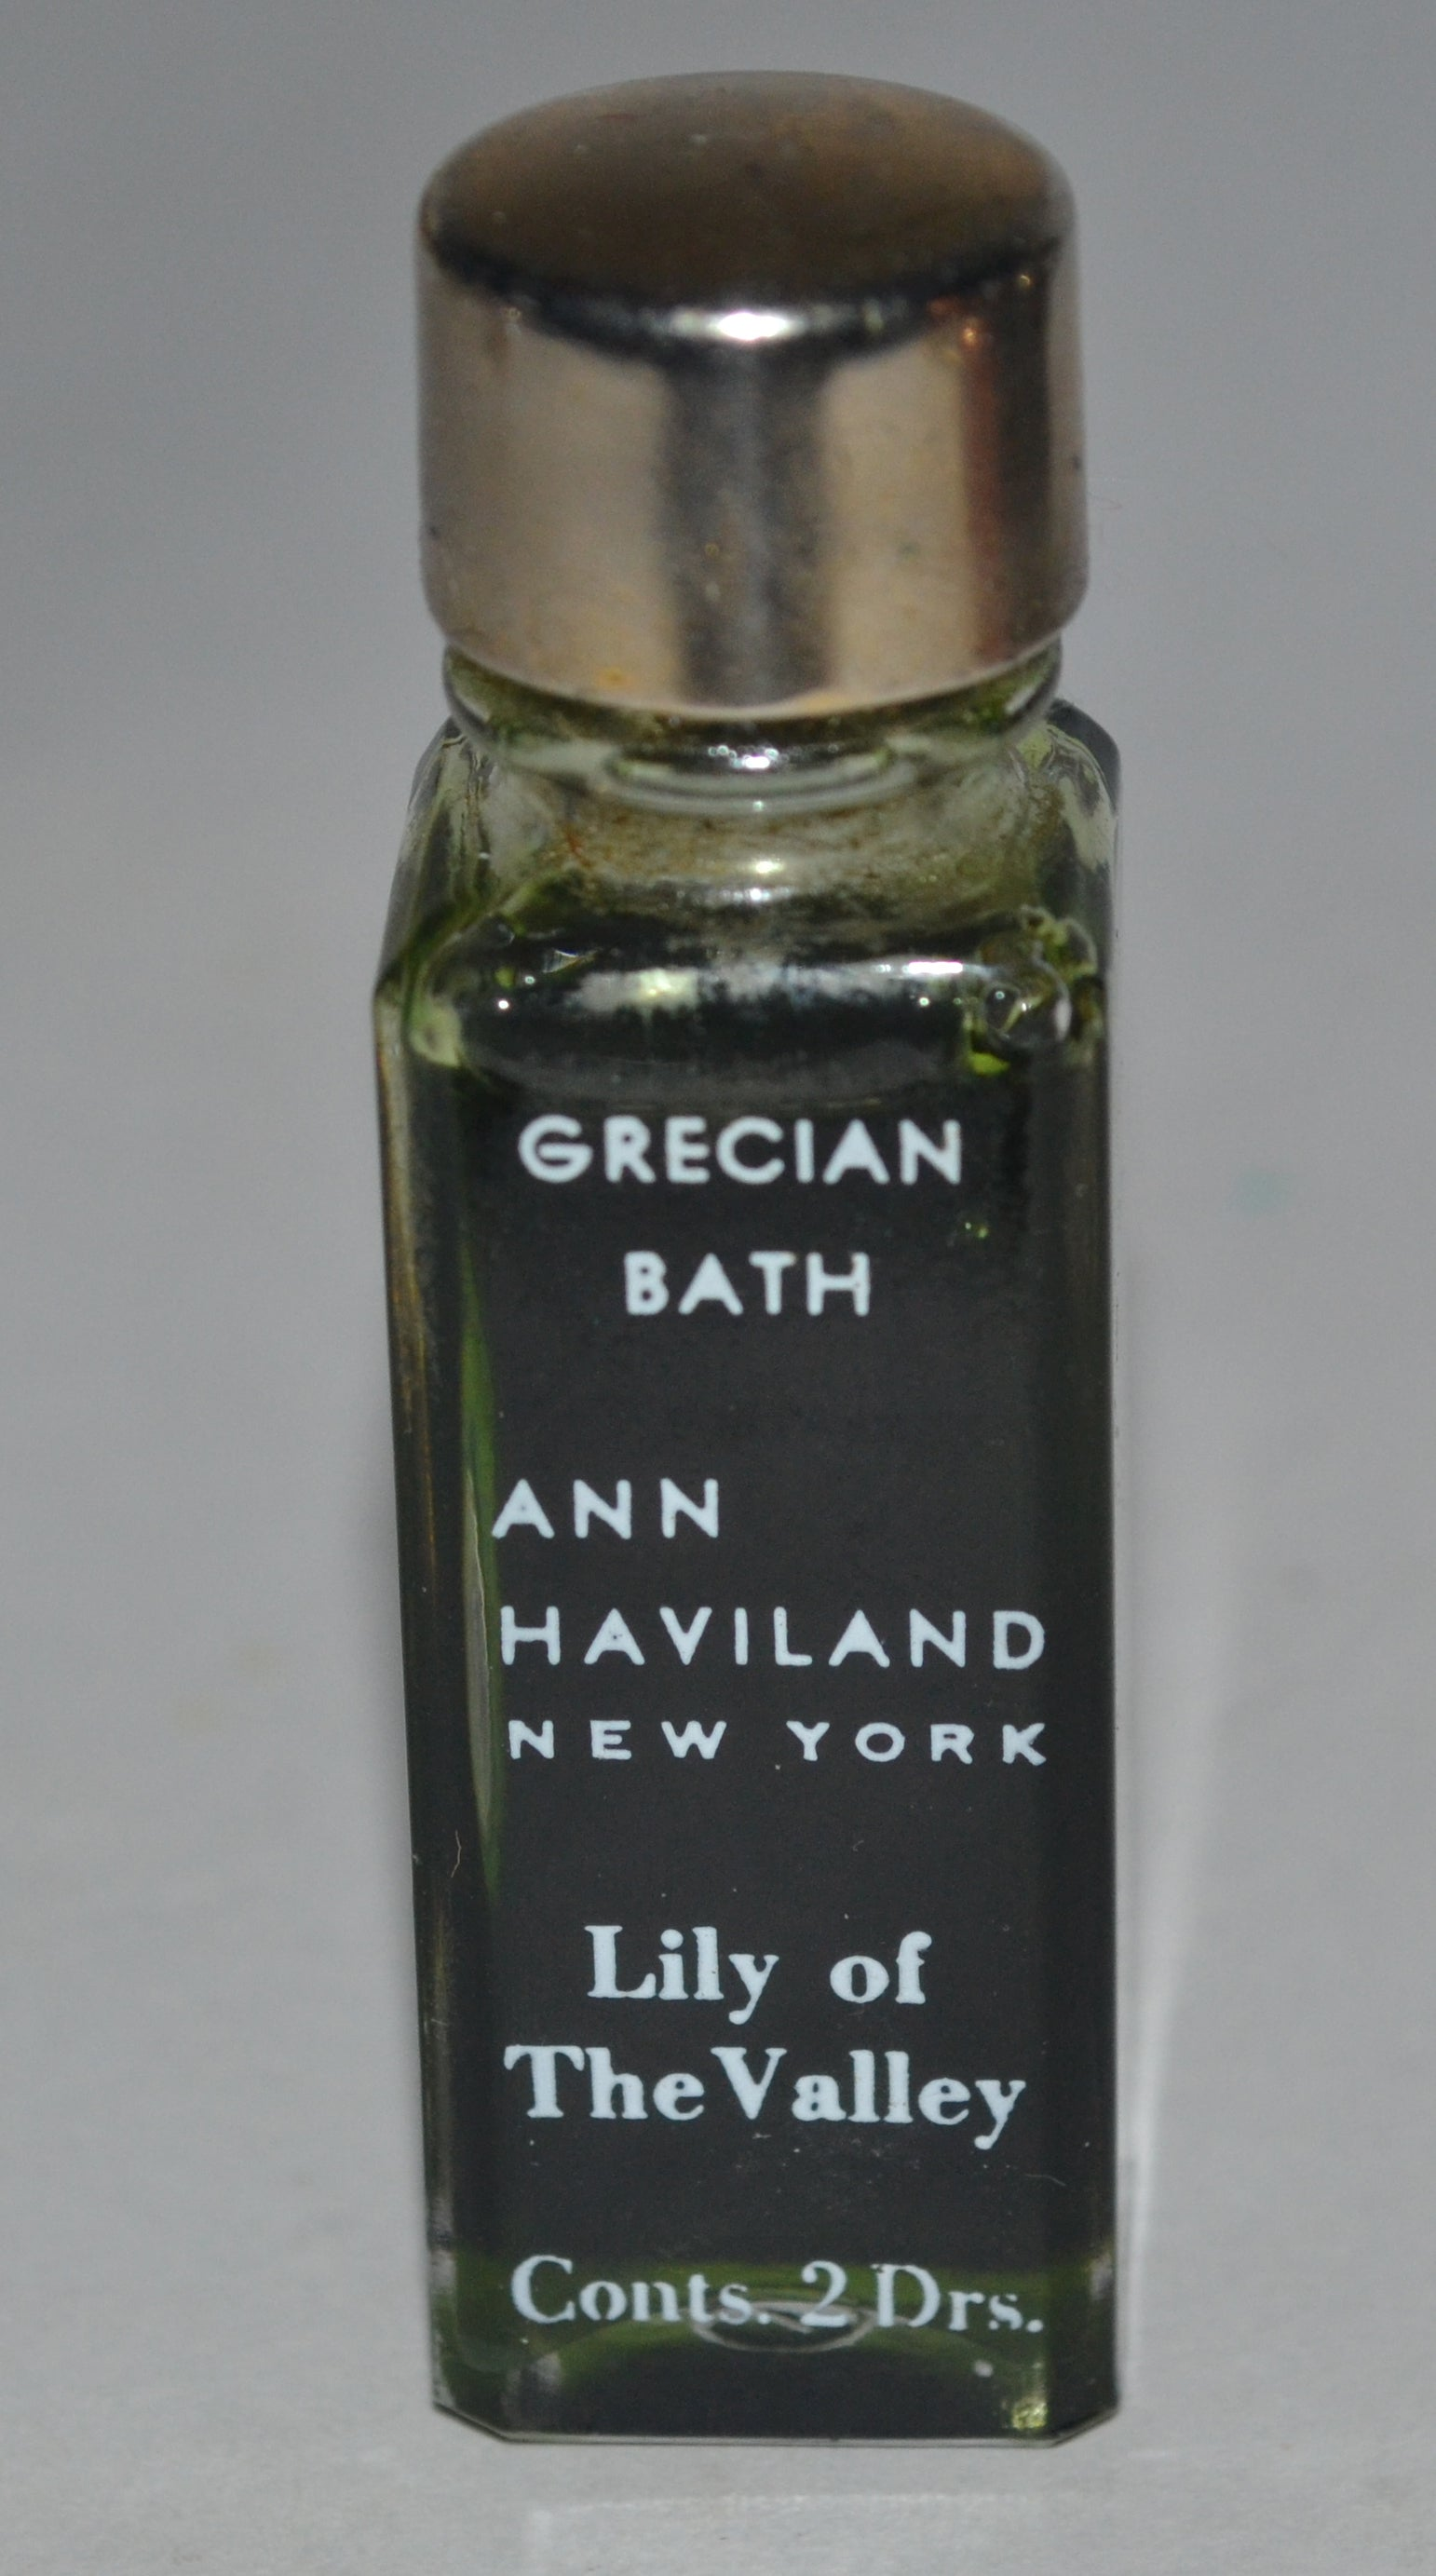 Vintage Lily of the Valley Grecian Bath Mini By Ann Haviland